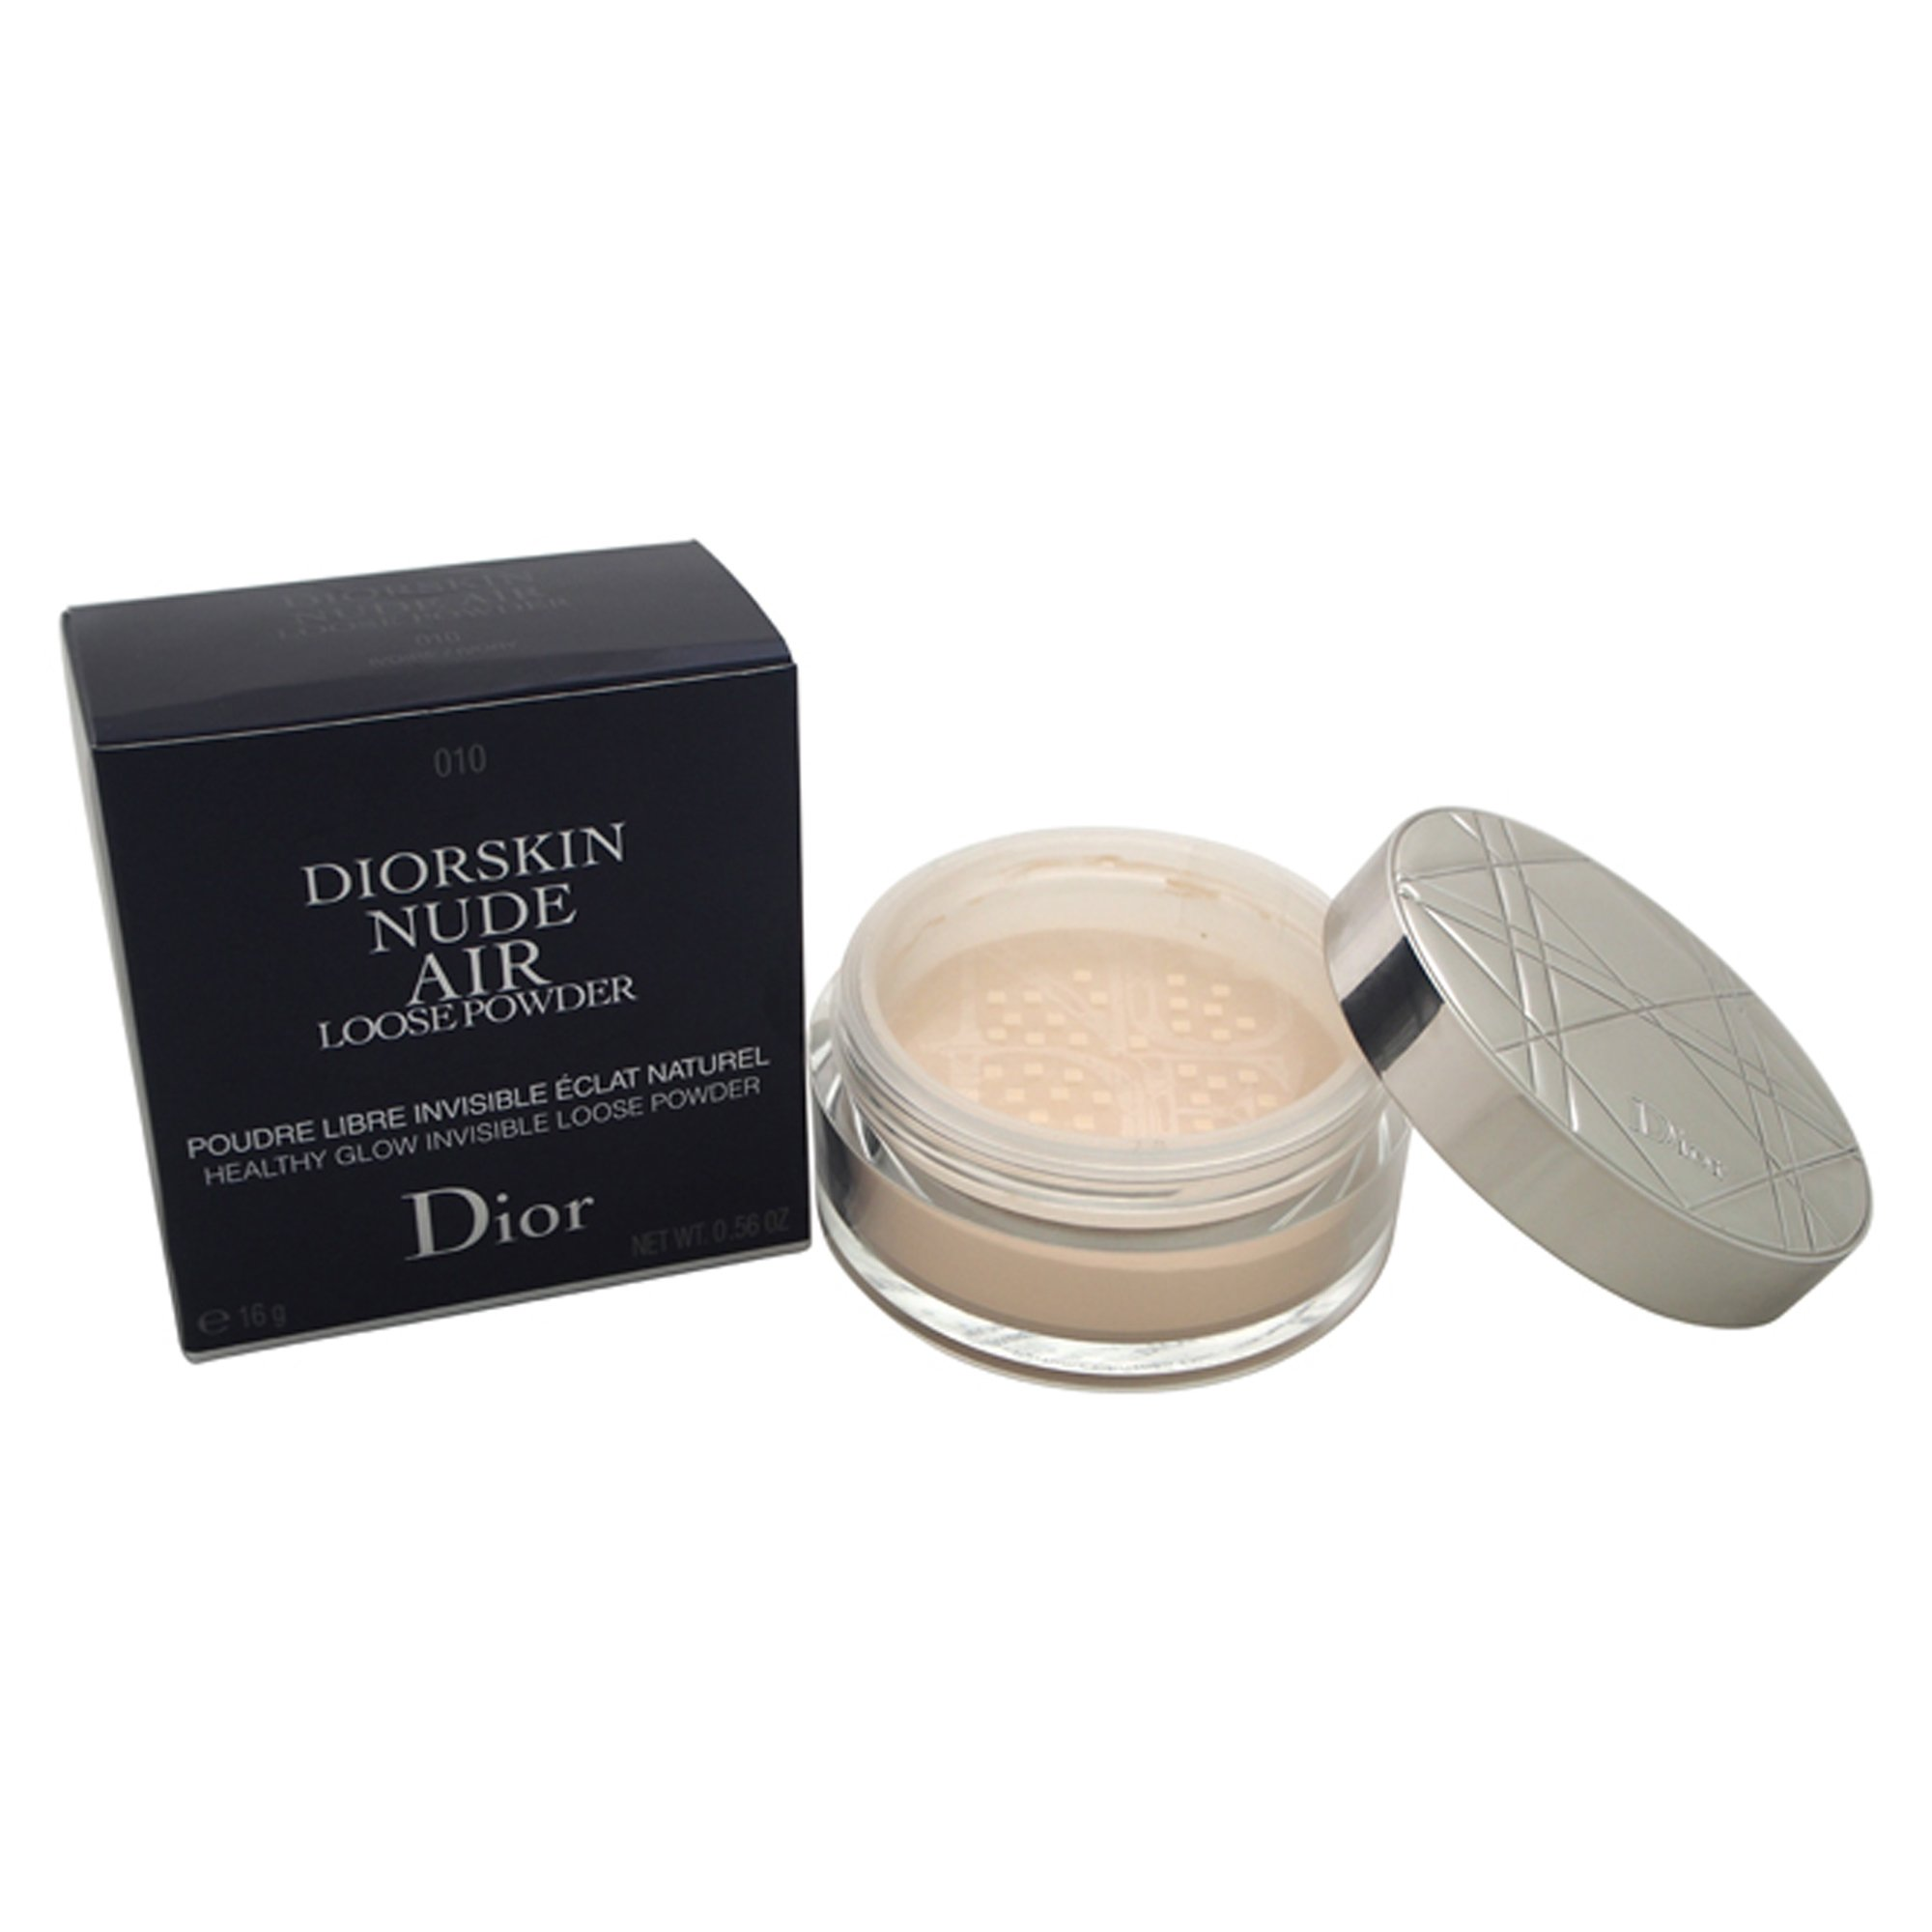 Christian Dior Diorskin Nude Air Loose Powder for Women, 010 Ivory, 0.54 Ounce